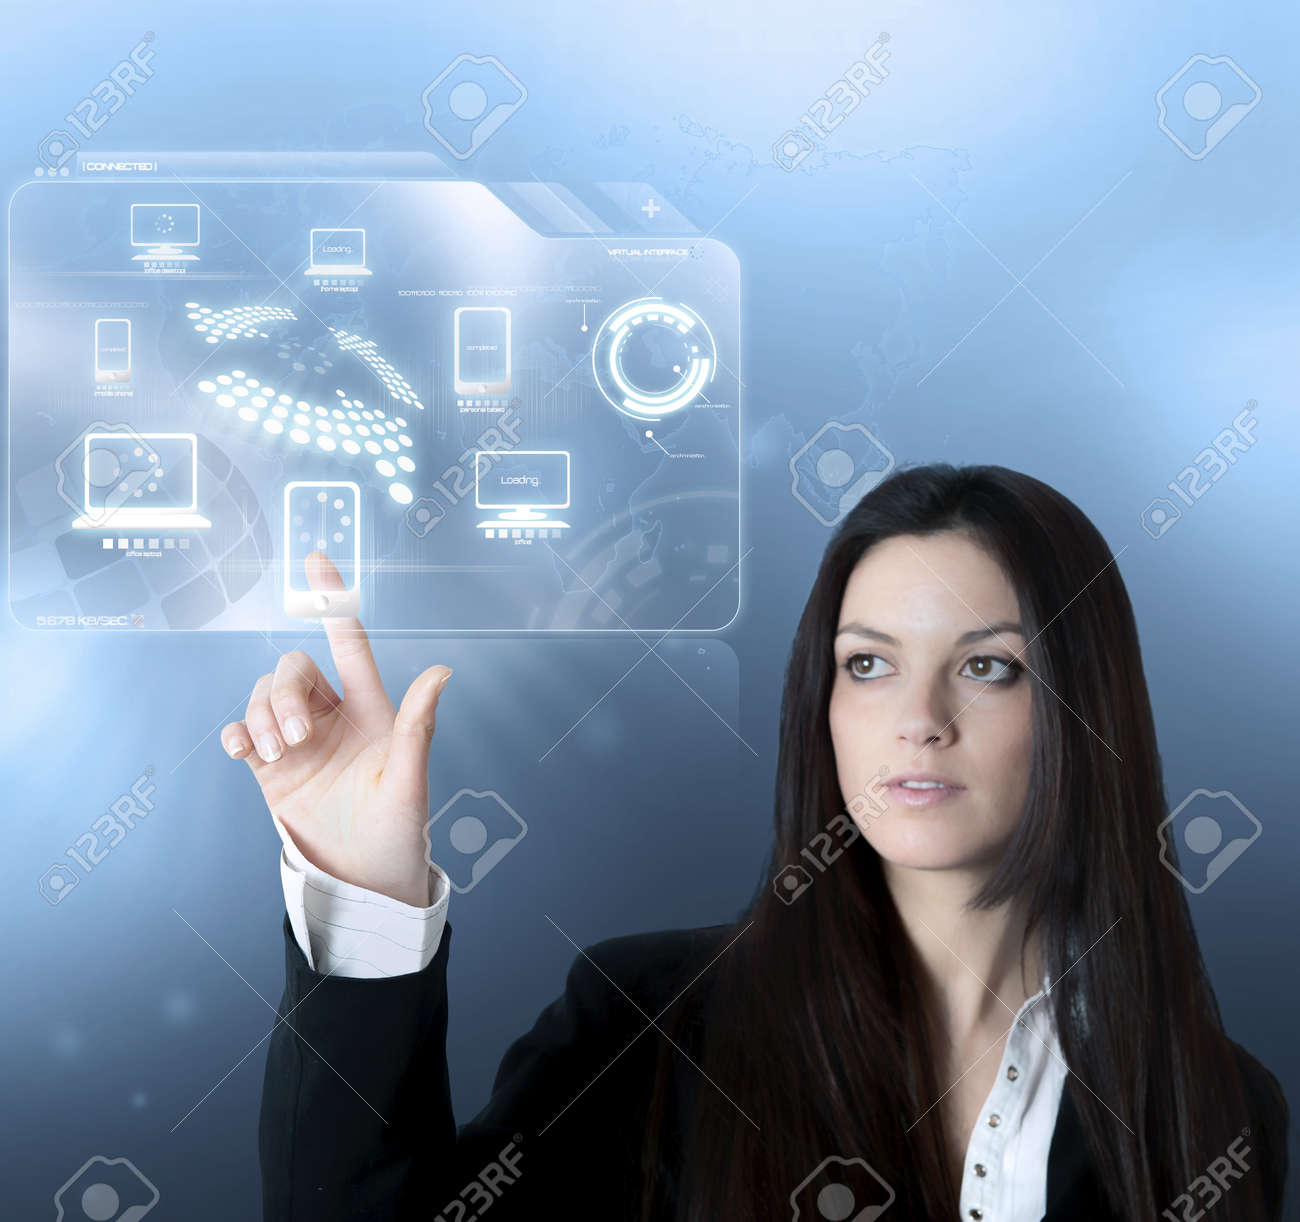 Technology interface with modern device Stock Photo - 14902889